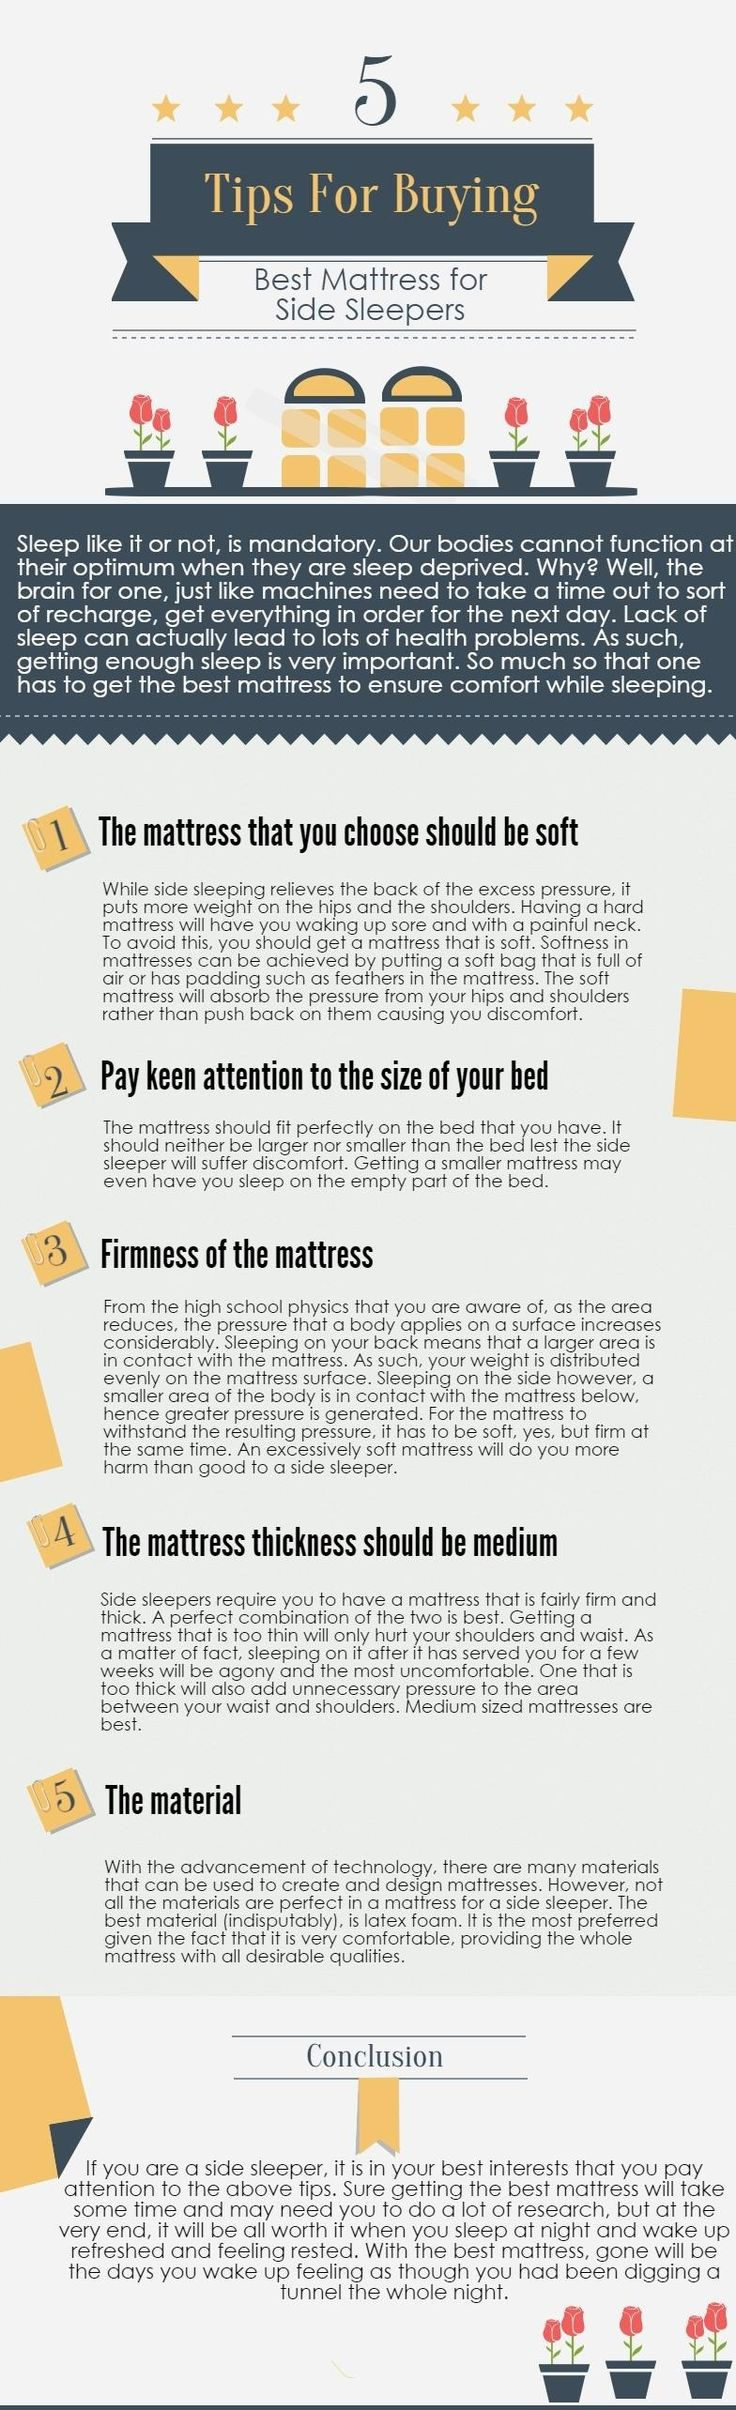 33 Best Mattress Guide Images On Pinterest Mattresses And Bedroom Ideas